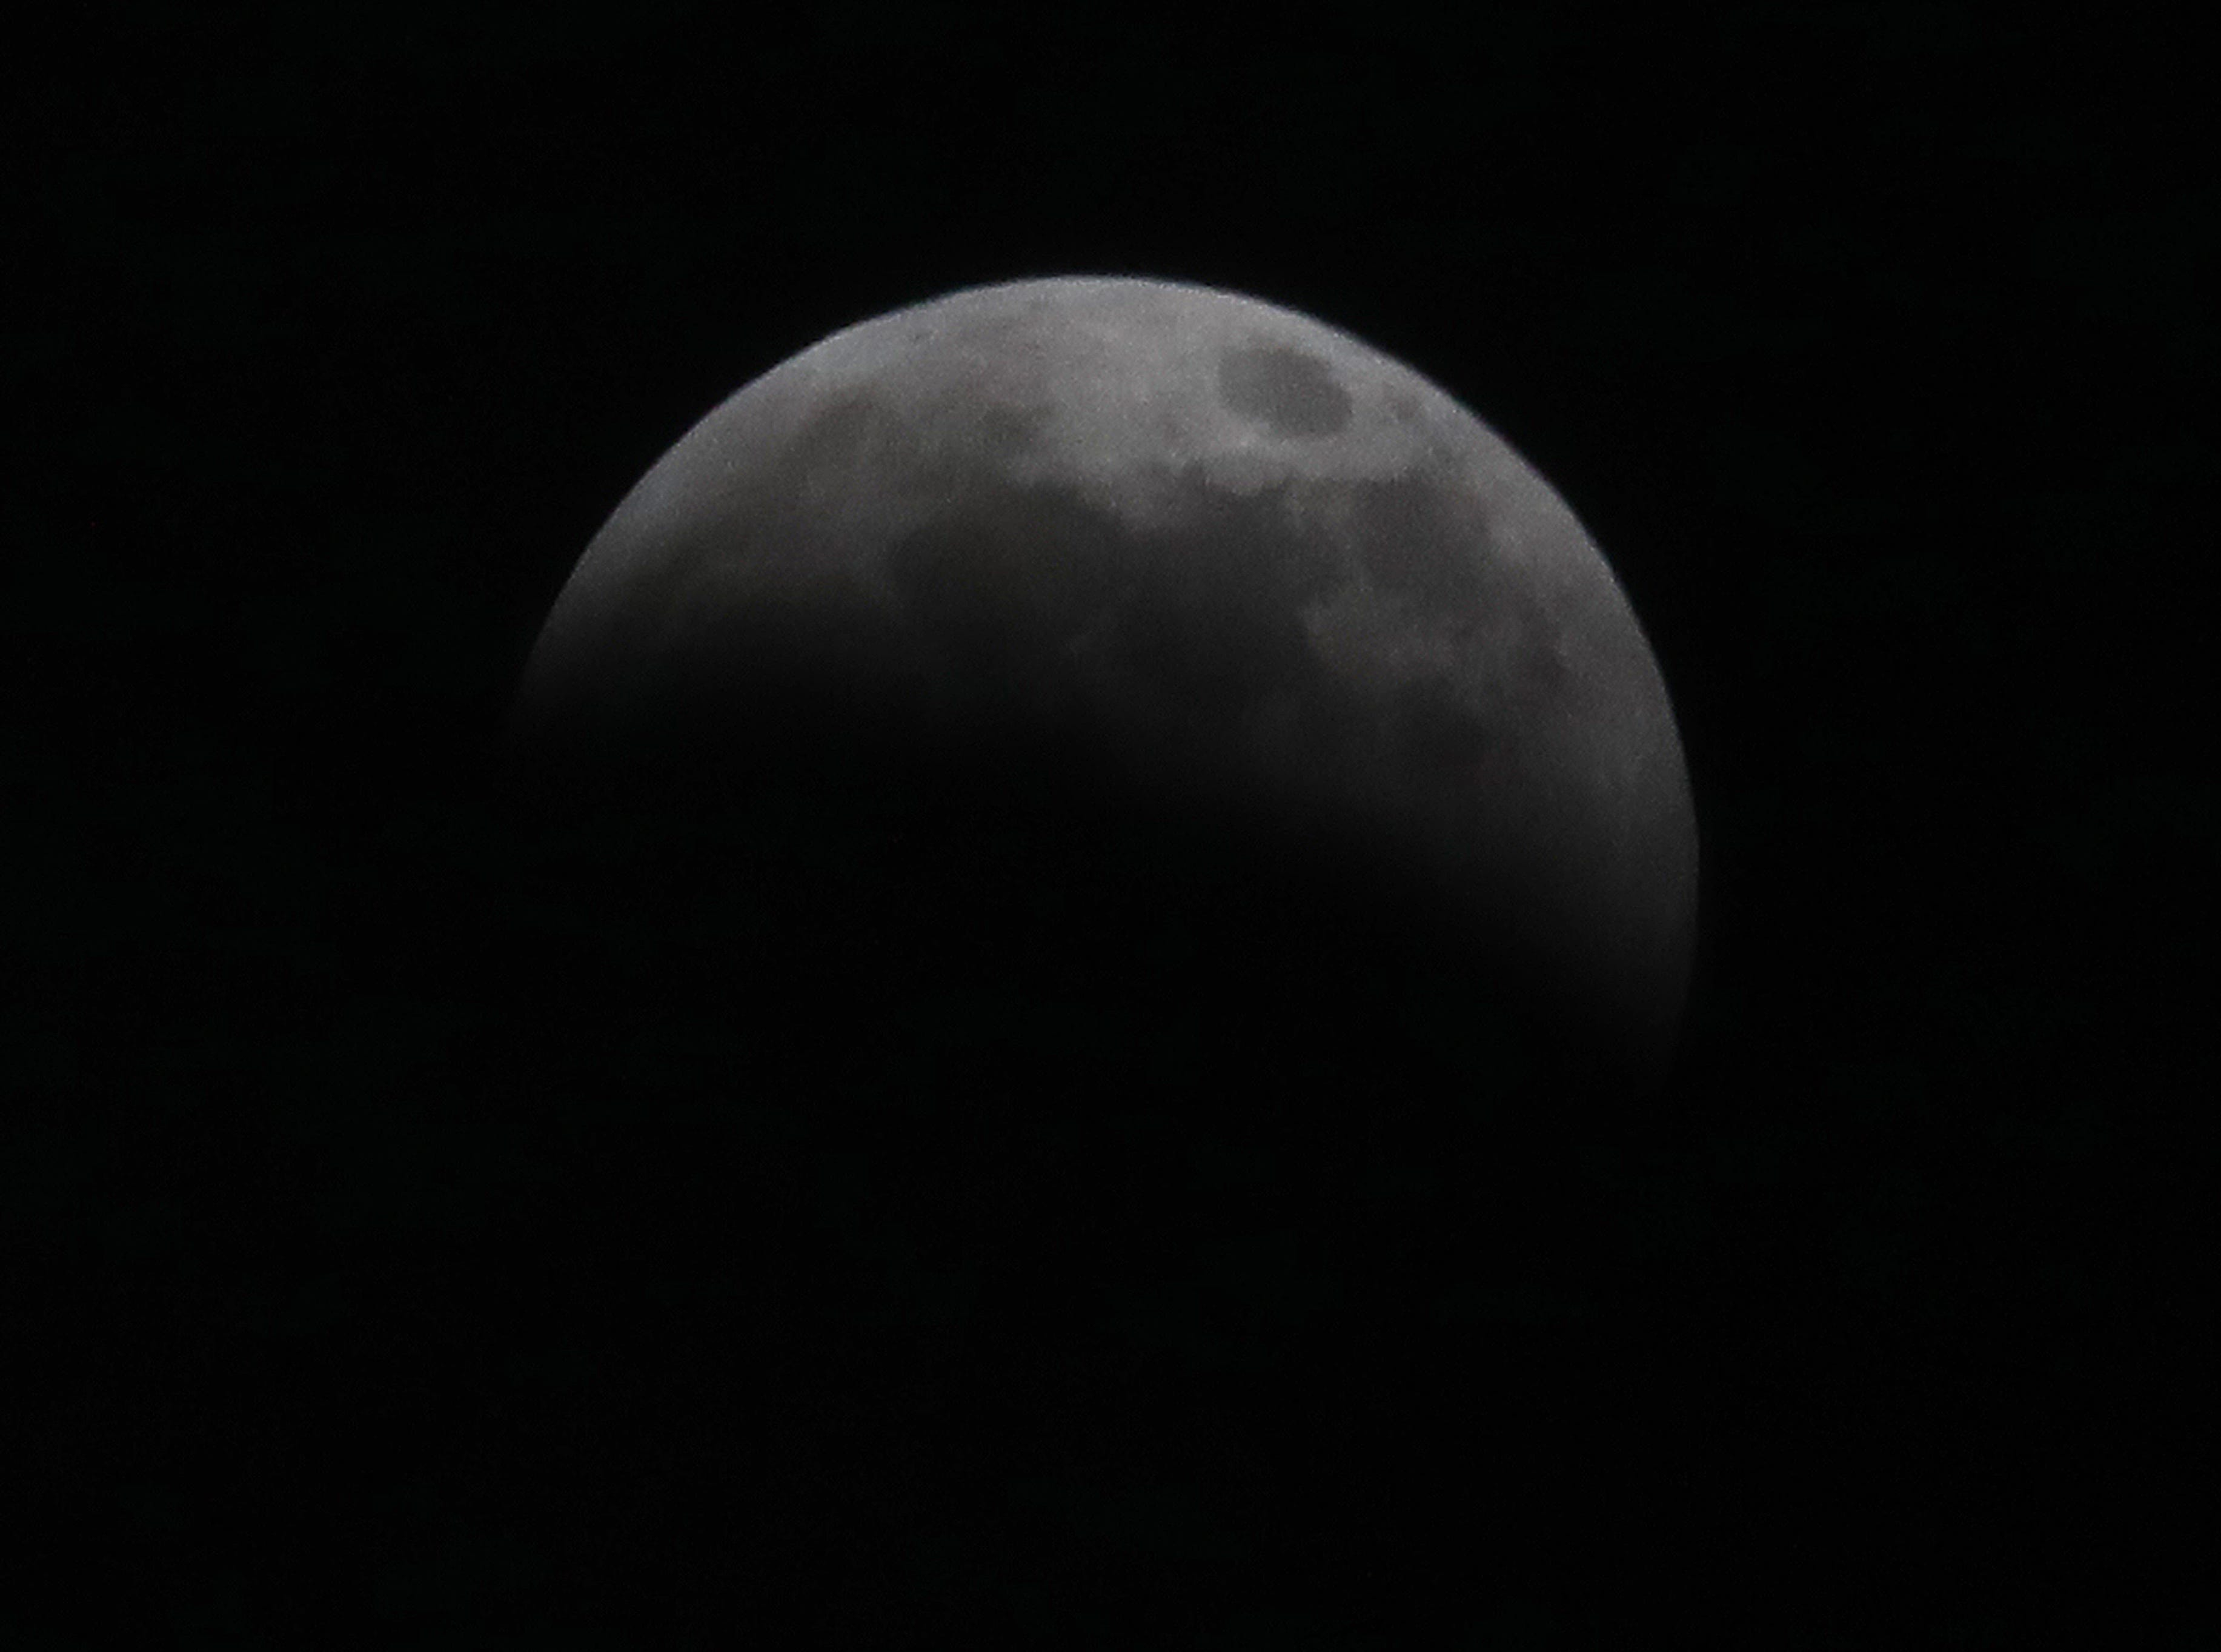 The moon is nearly covered in the shadow of the Earth during the lunar eclipse.